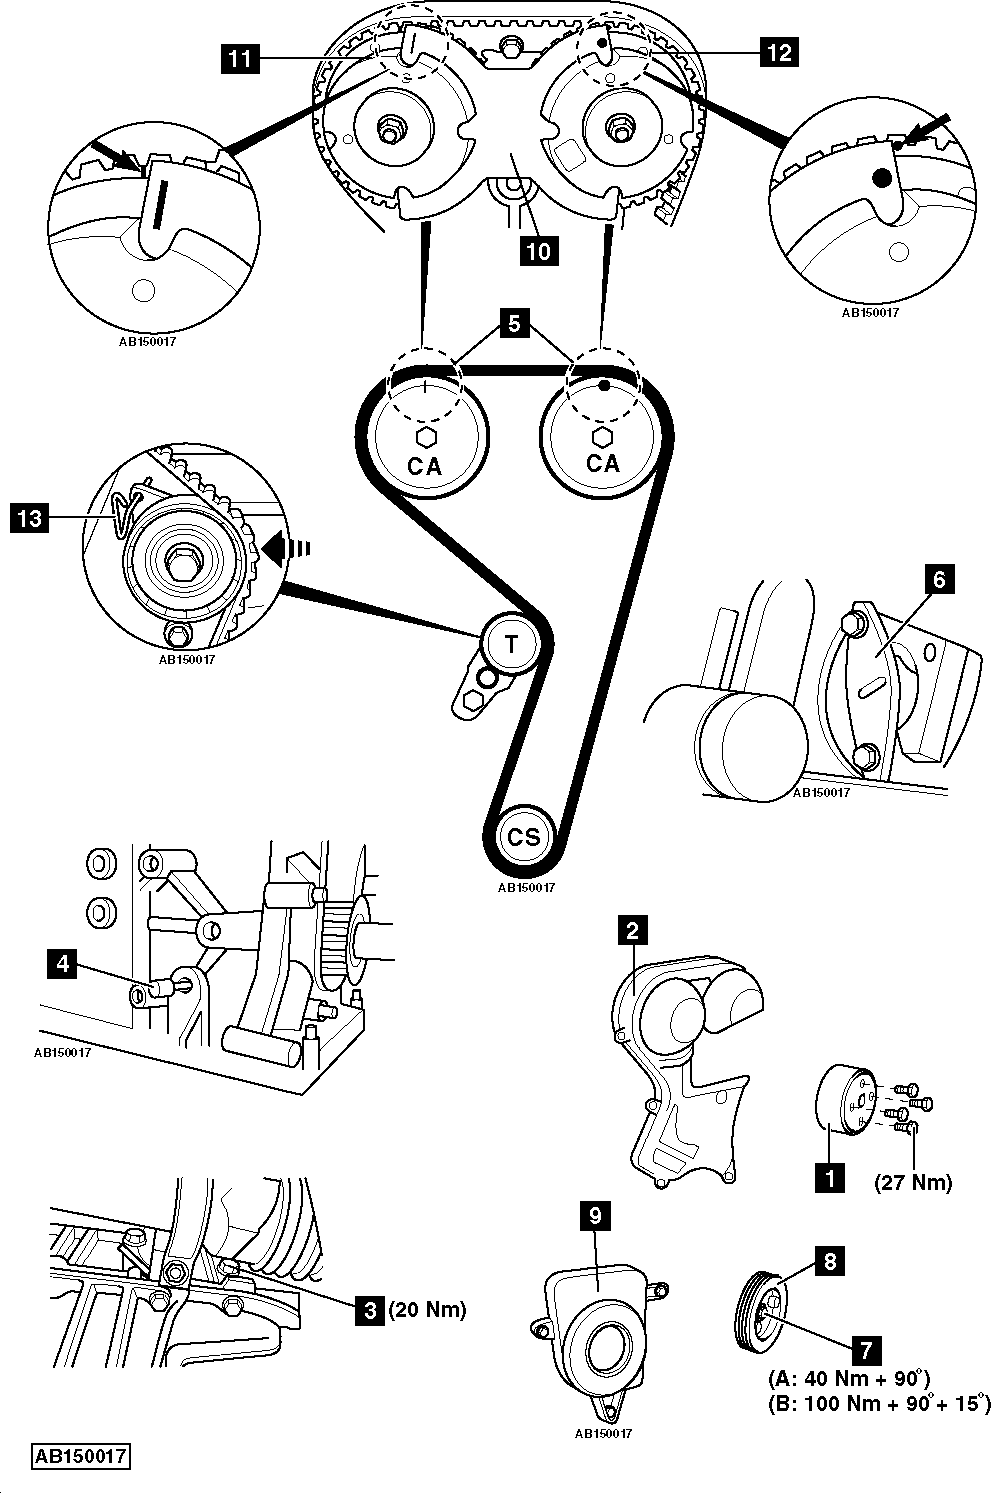 Serpentine Belt Diagram For 2002 Ford Taurus, Serpentine